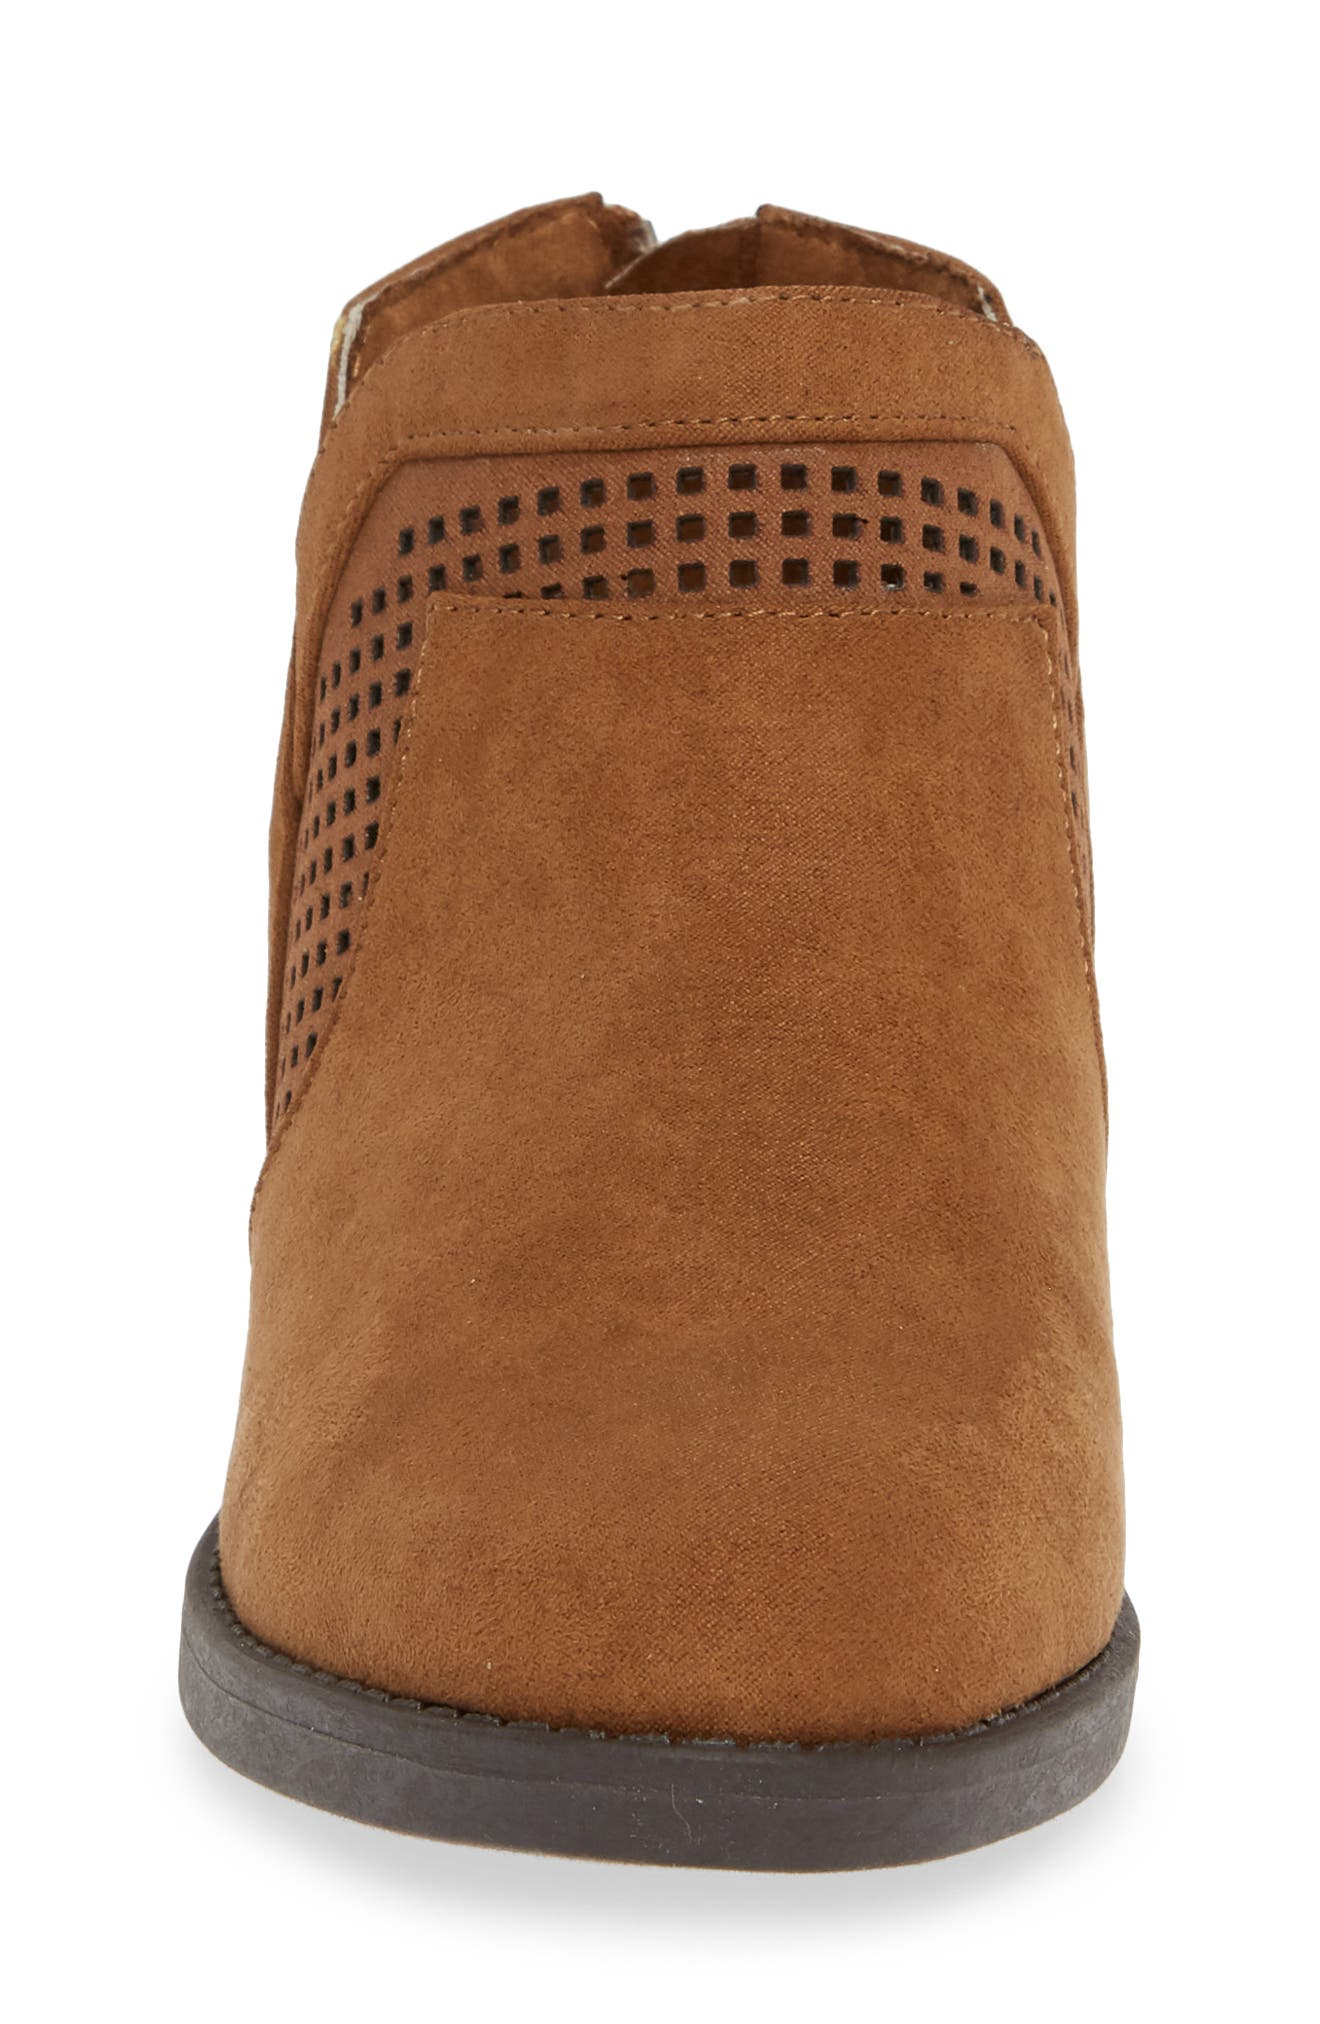 Wild Westy Perforated Bootie,                             Alternate thumbnail 4, color,                             206